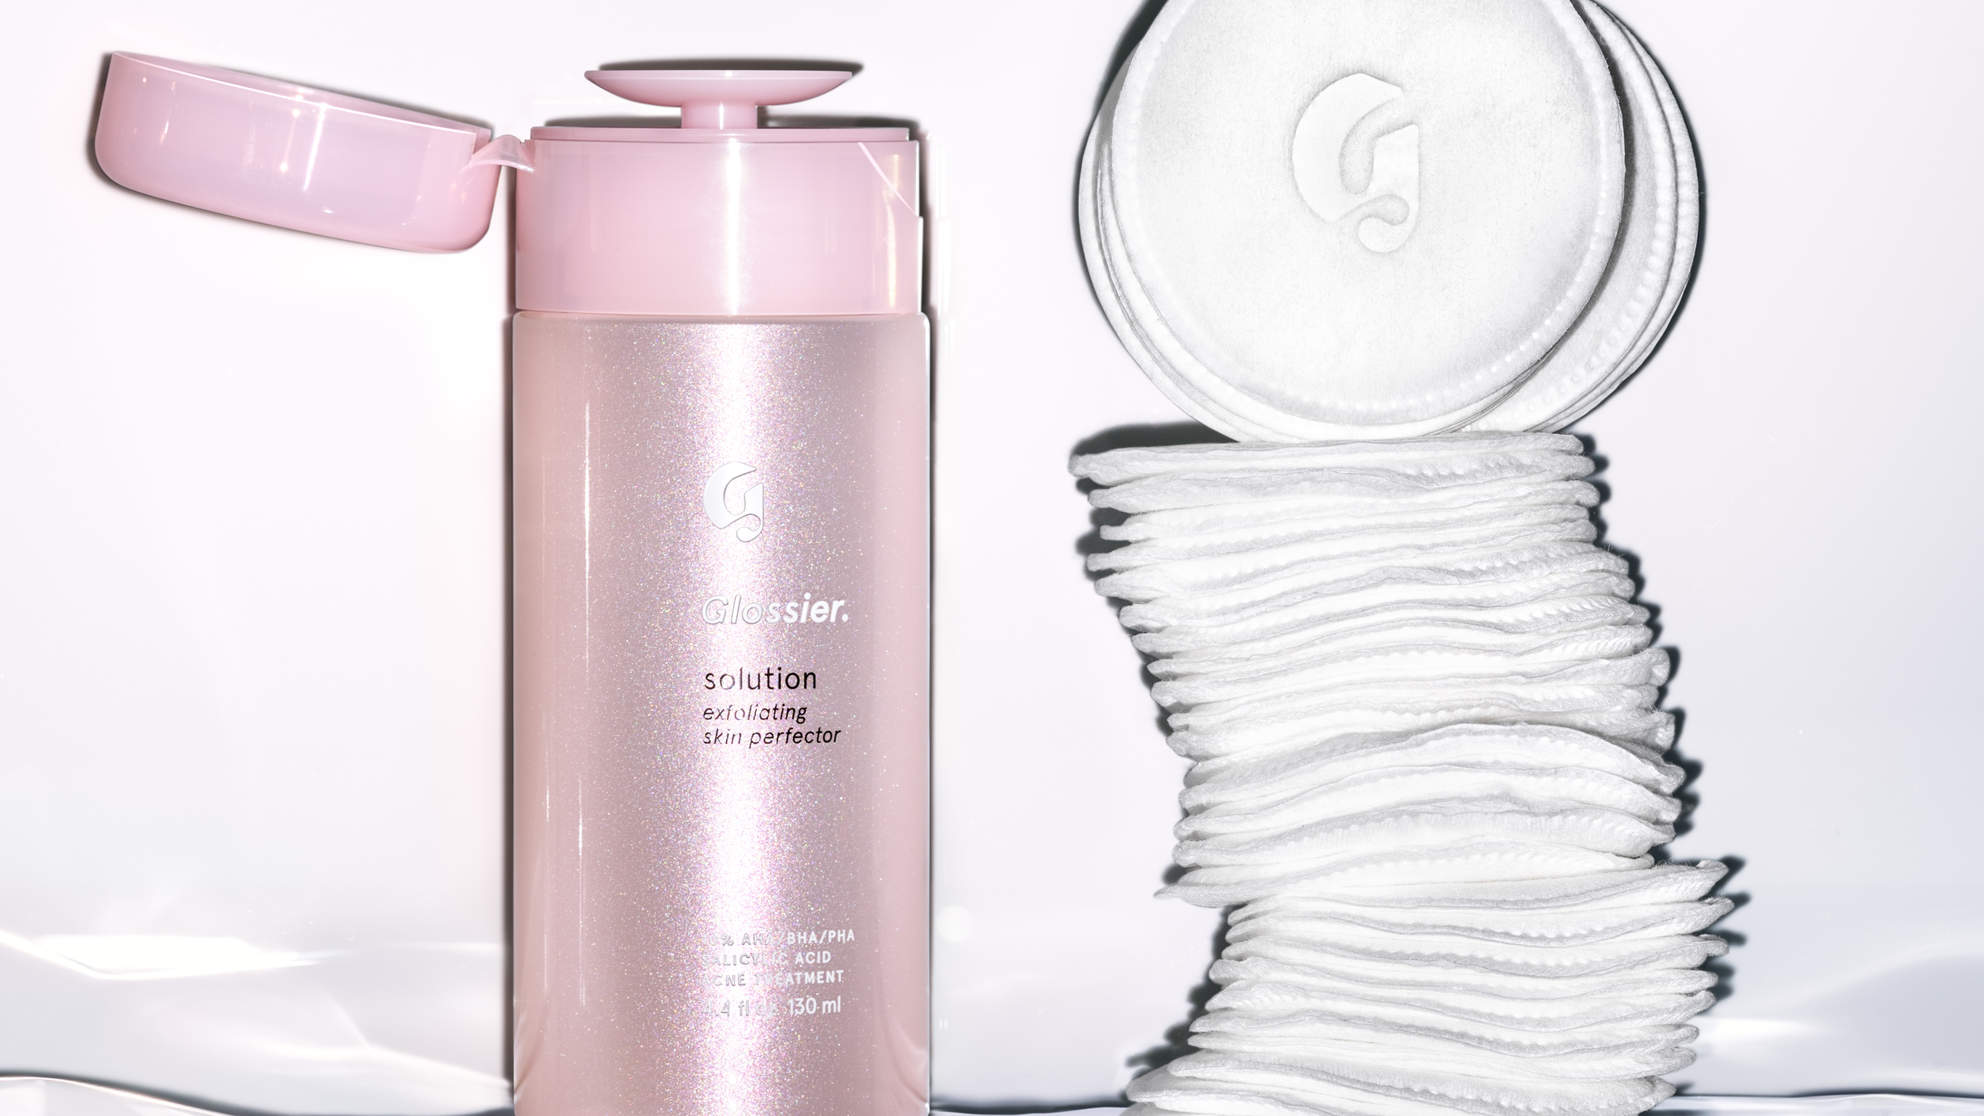 Glossier's New Exfoliating Product Is Here to Help Clear Your Acne